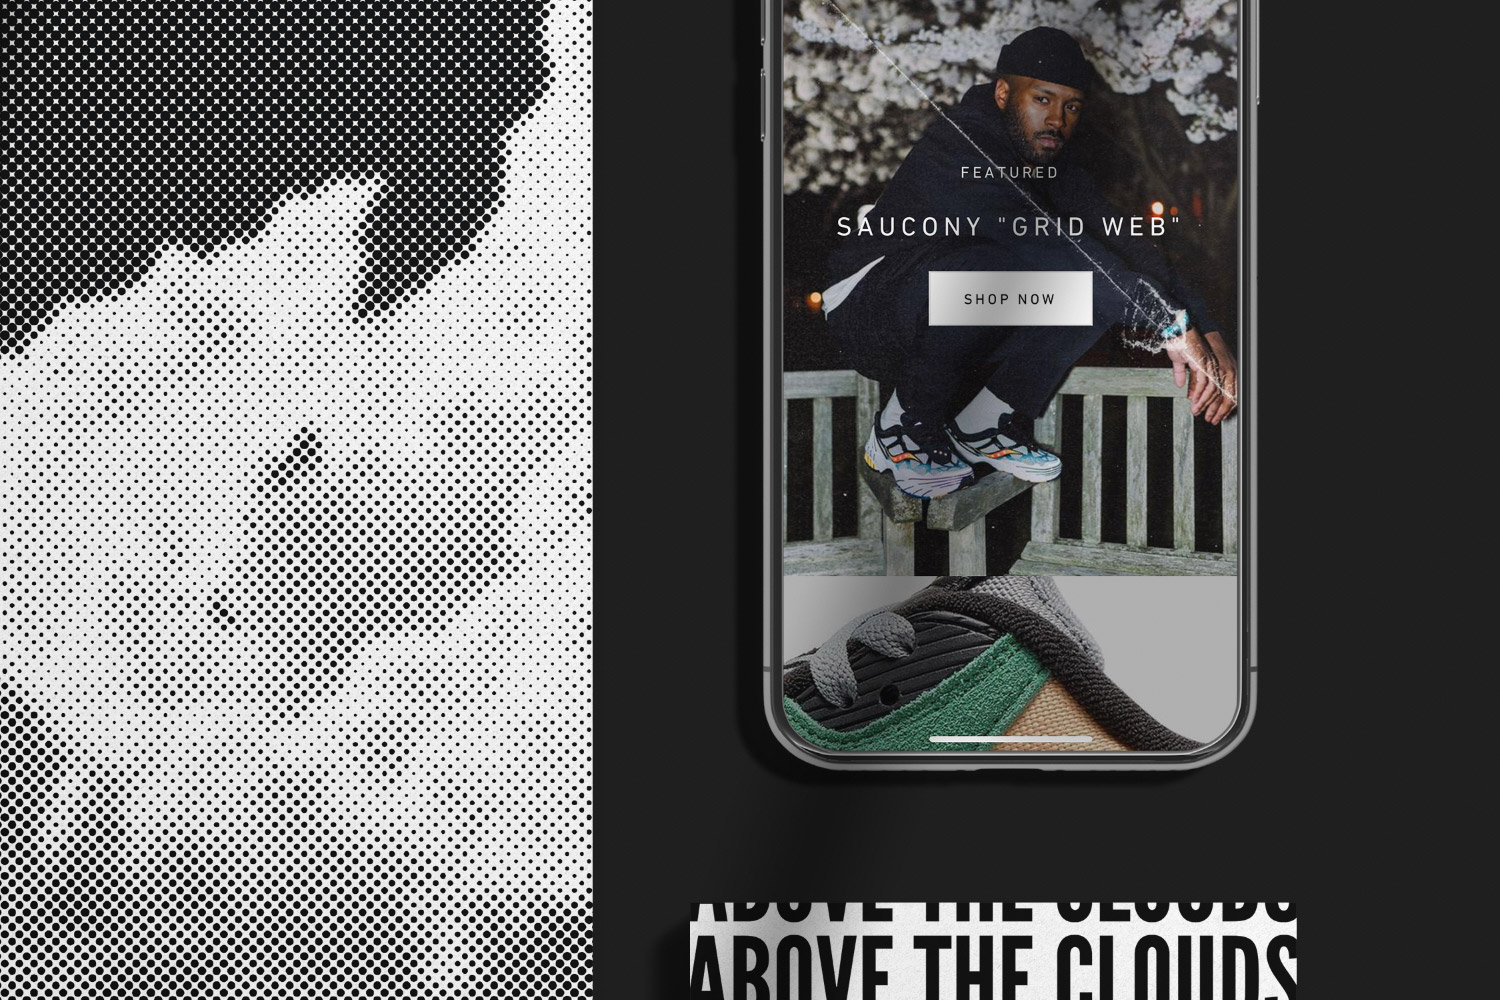 Above The Clouds  Art Direction | Brand Identity | Shopify Design & Development | Social Media Management